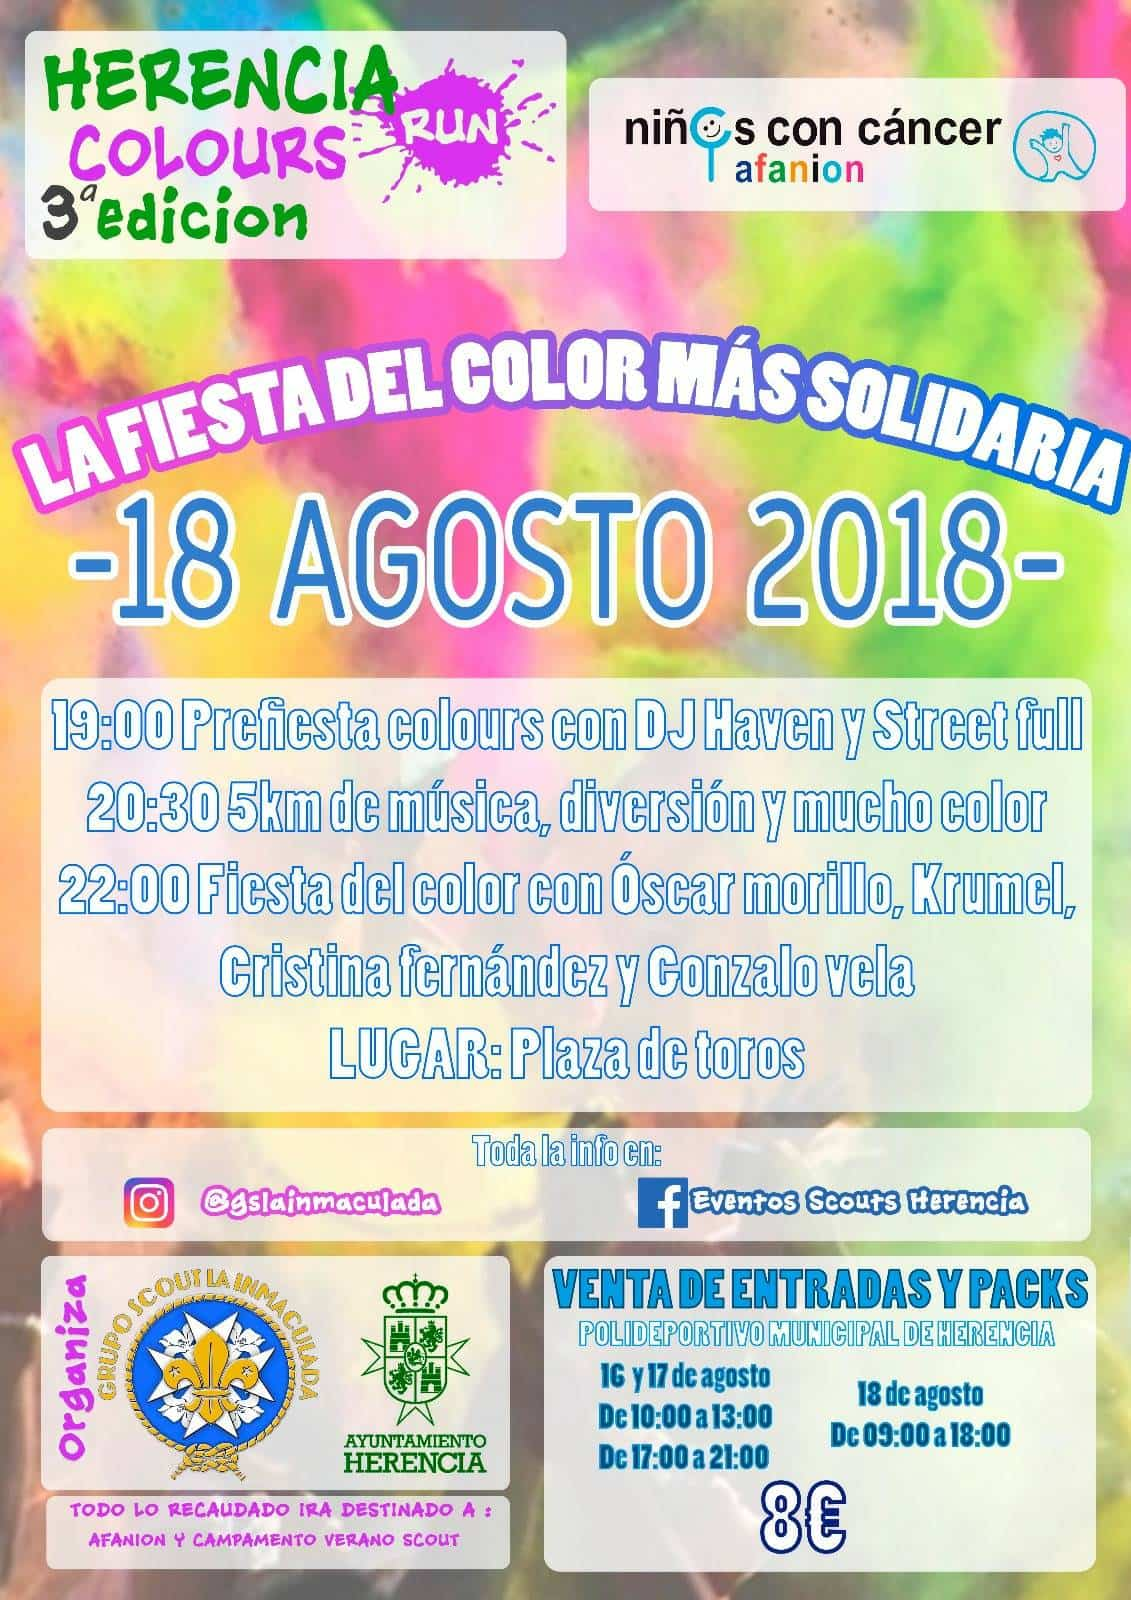 III herencia colours run - III Herencia Colours Run, la fiesta del color más solidaria